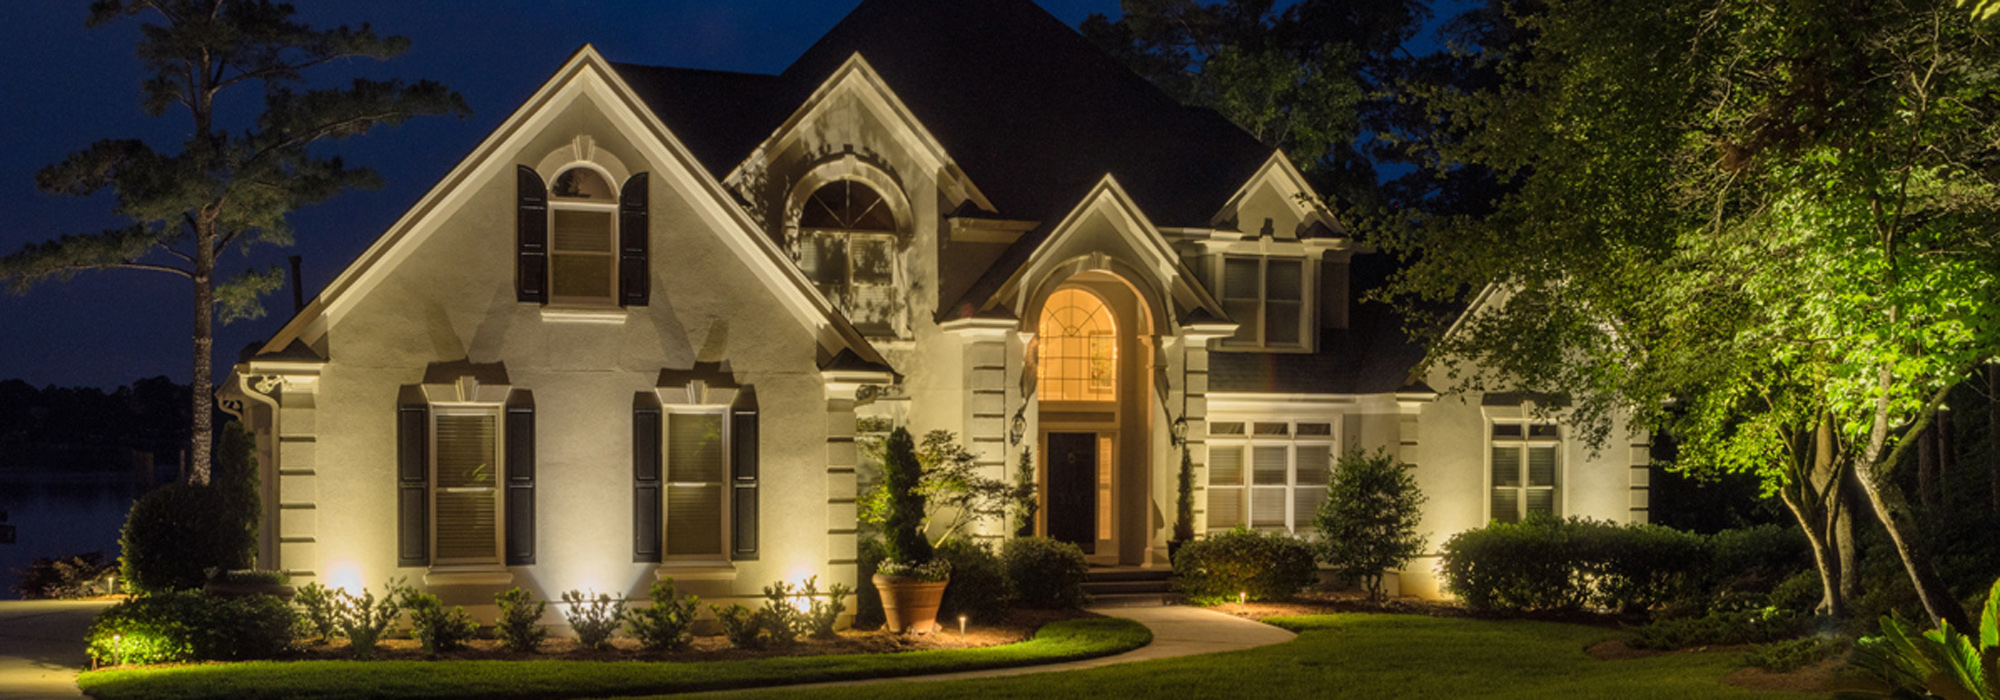 Be Sure To Read Our Blog For Even More Outdoor Lighting Ideas.